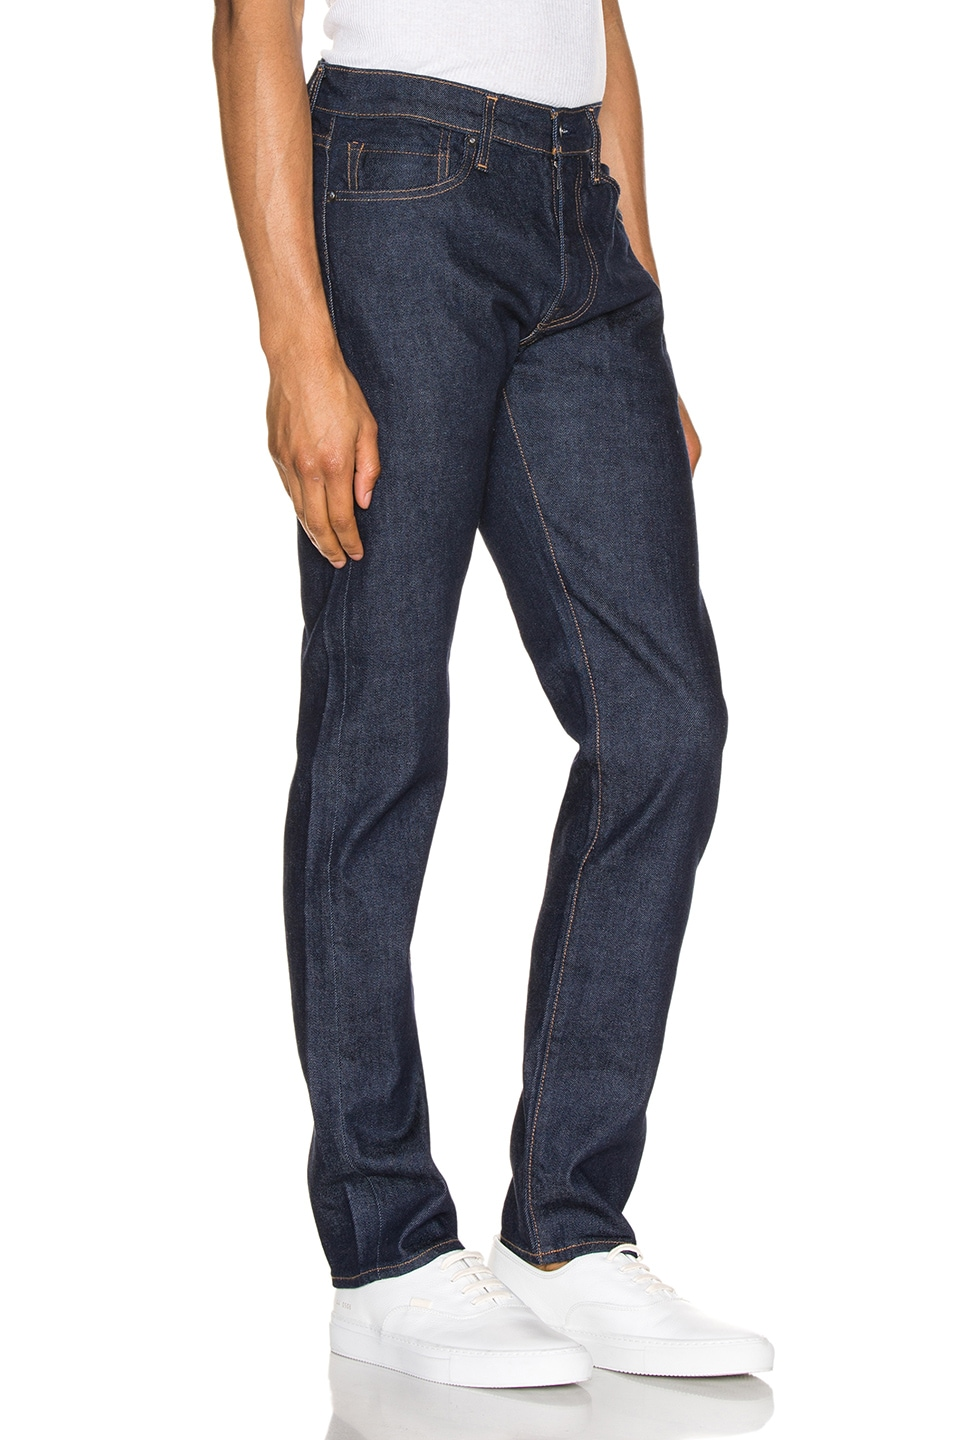 Image 2 of LEVI'S: Made & Crafted 511 in Resin Rinse Stretch Selvedge